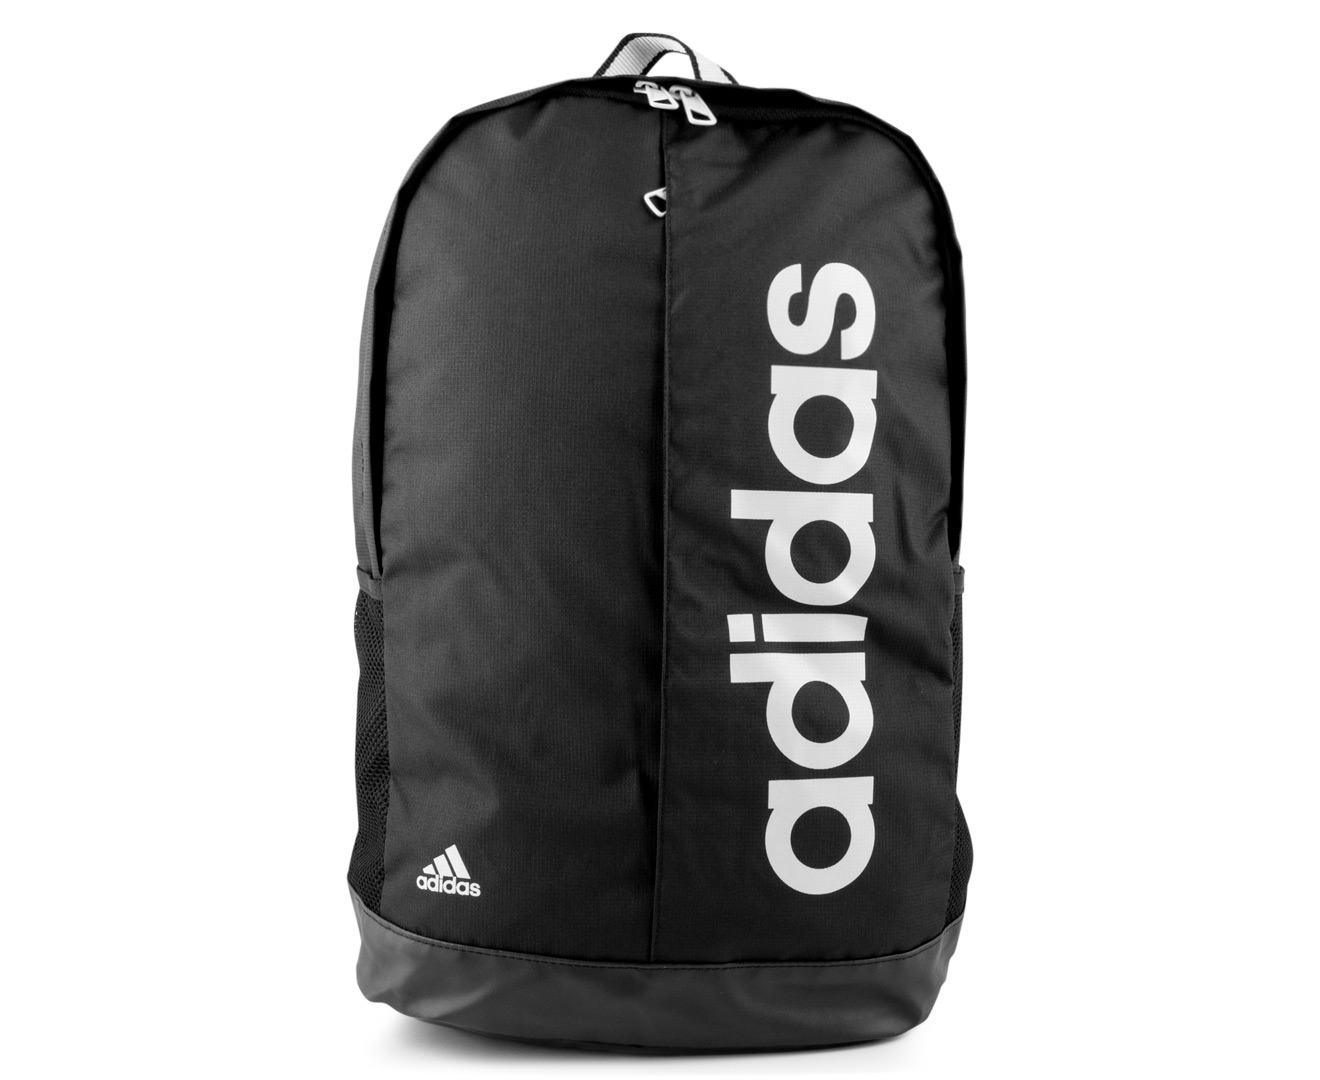 54219c3fde5d Adidas Linear Performance Backpack - Black Grey